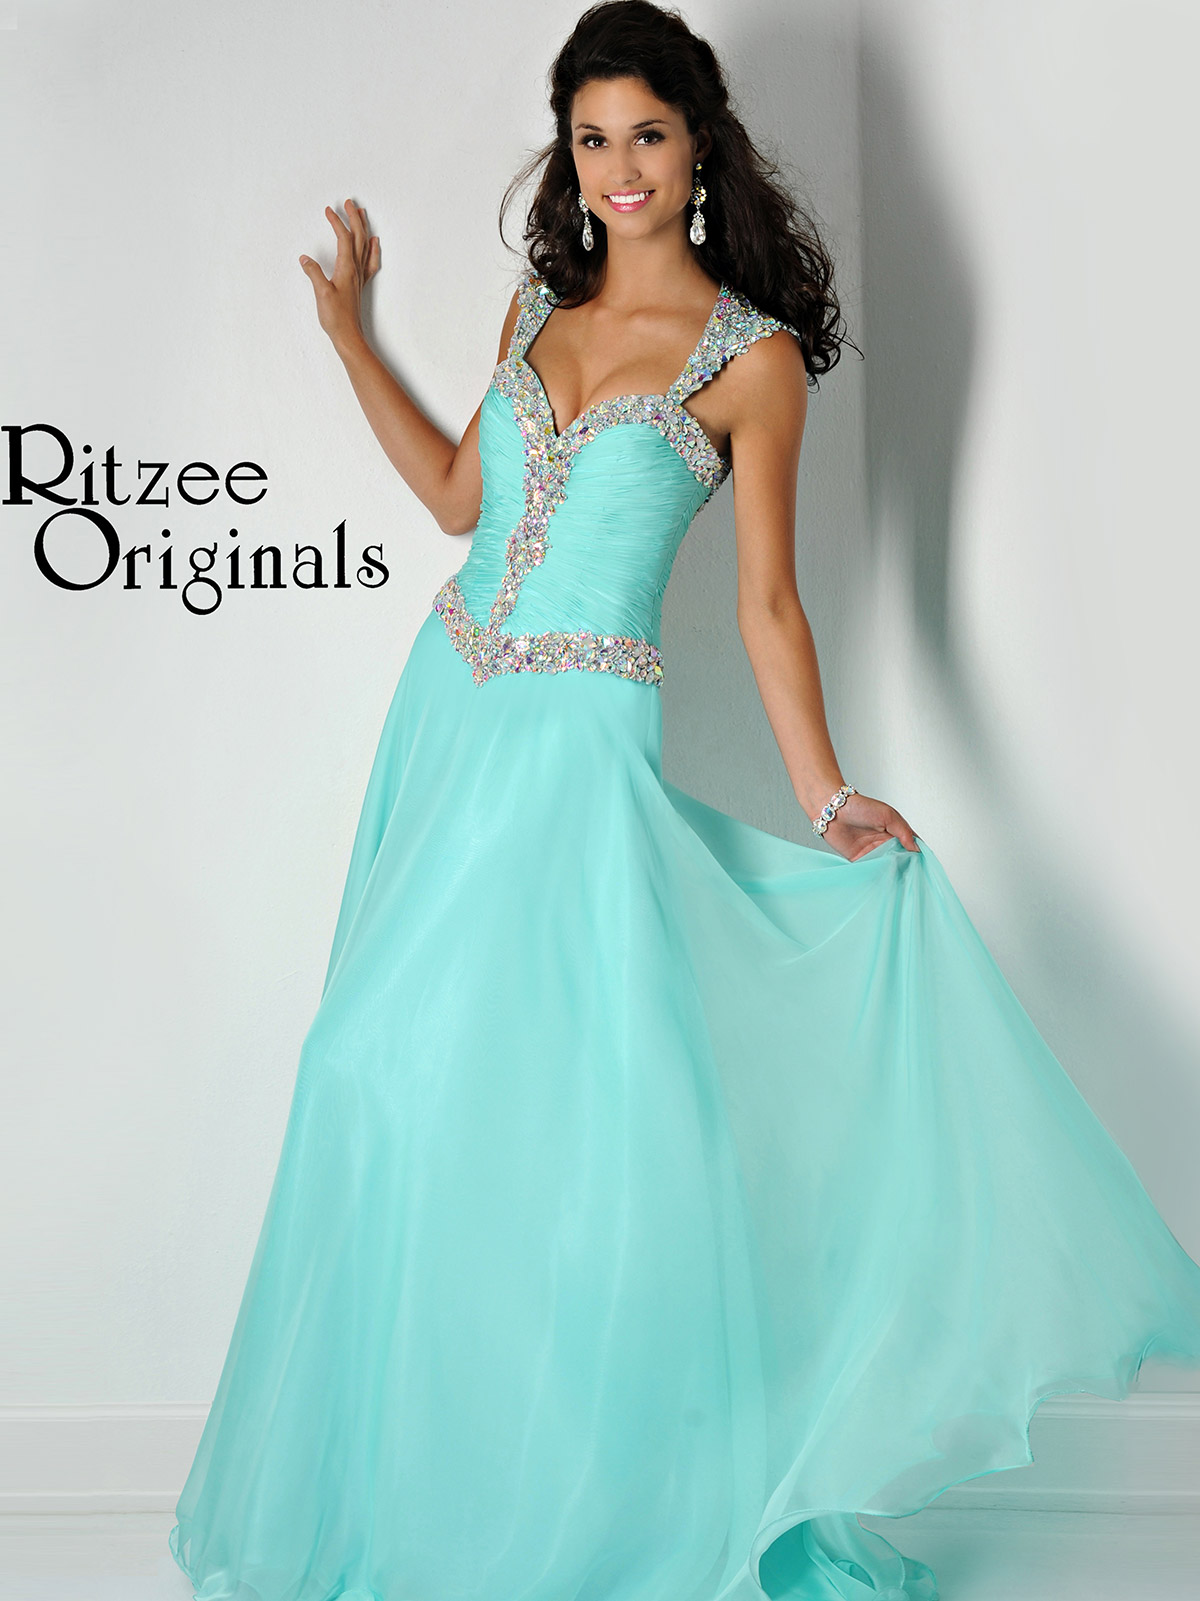 In Stock Misses Pageant Dresses | PageantDesigns.com